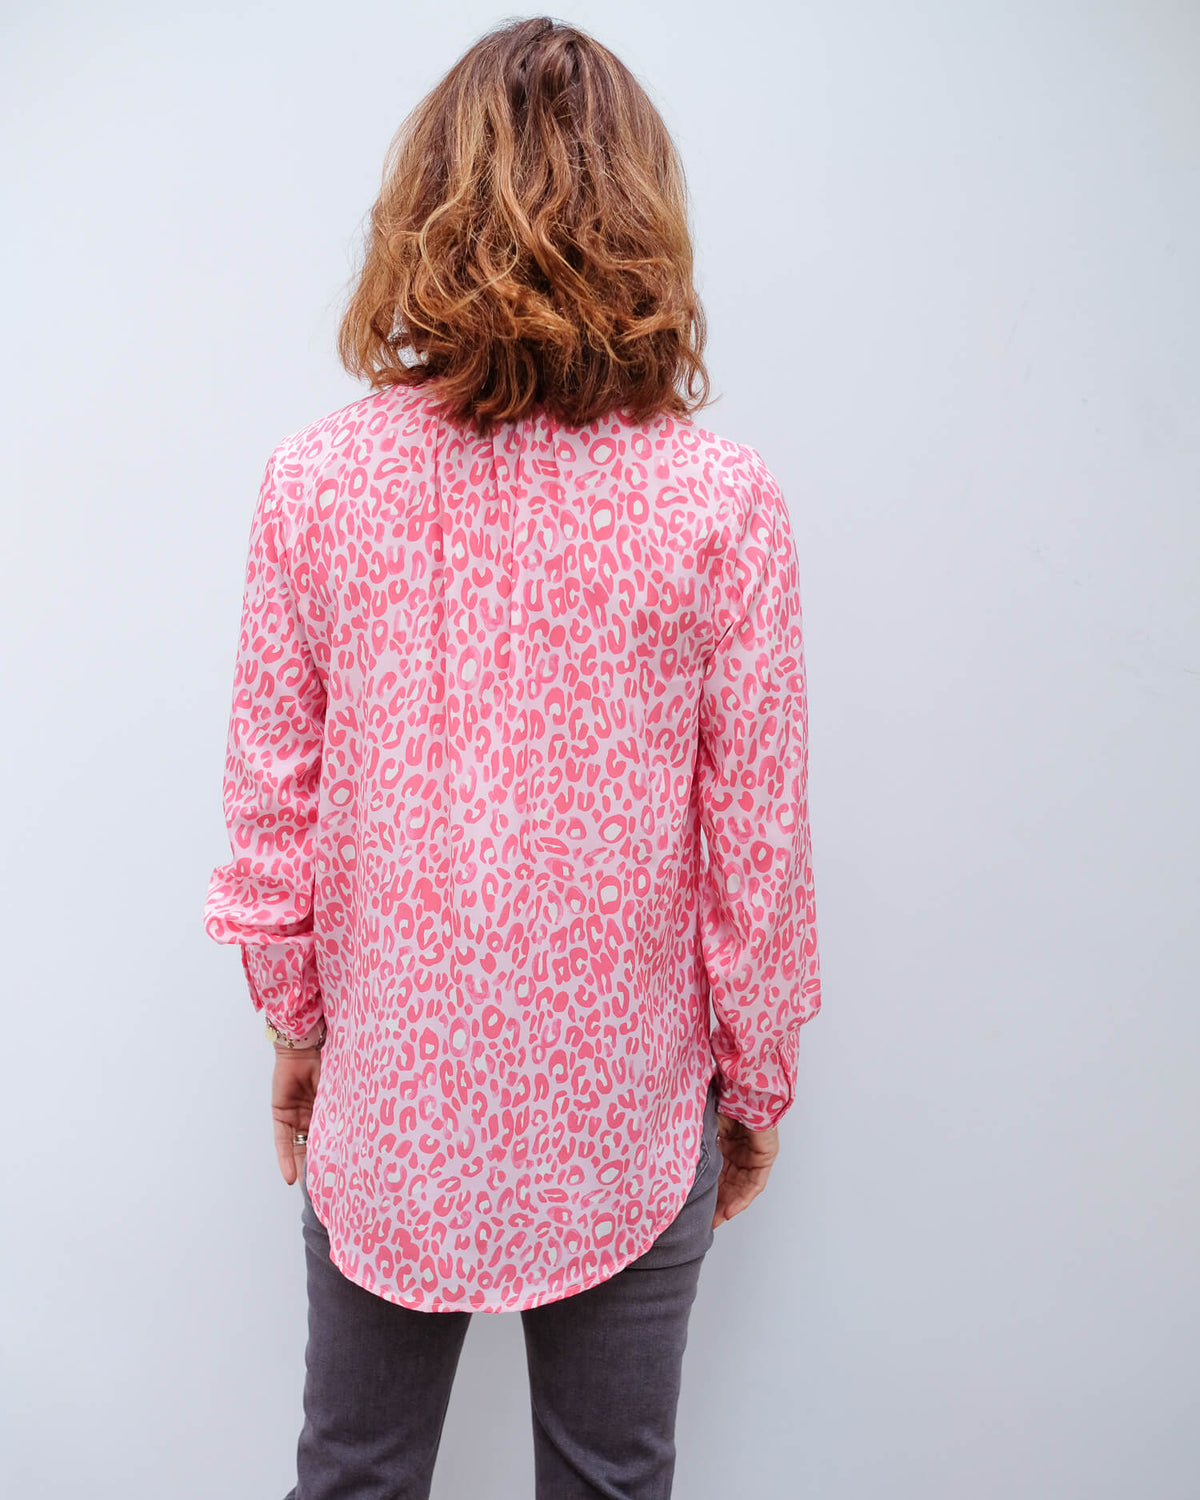 PP Sandy open silk shirt in leopard 02